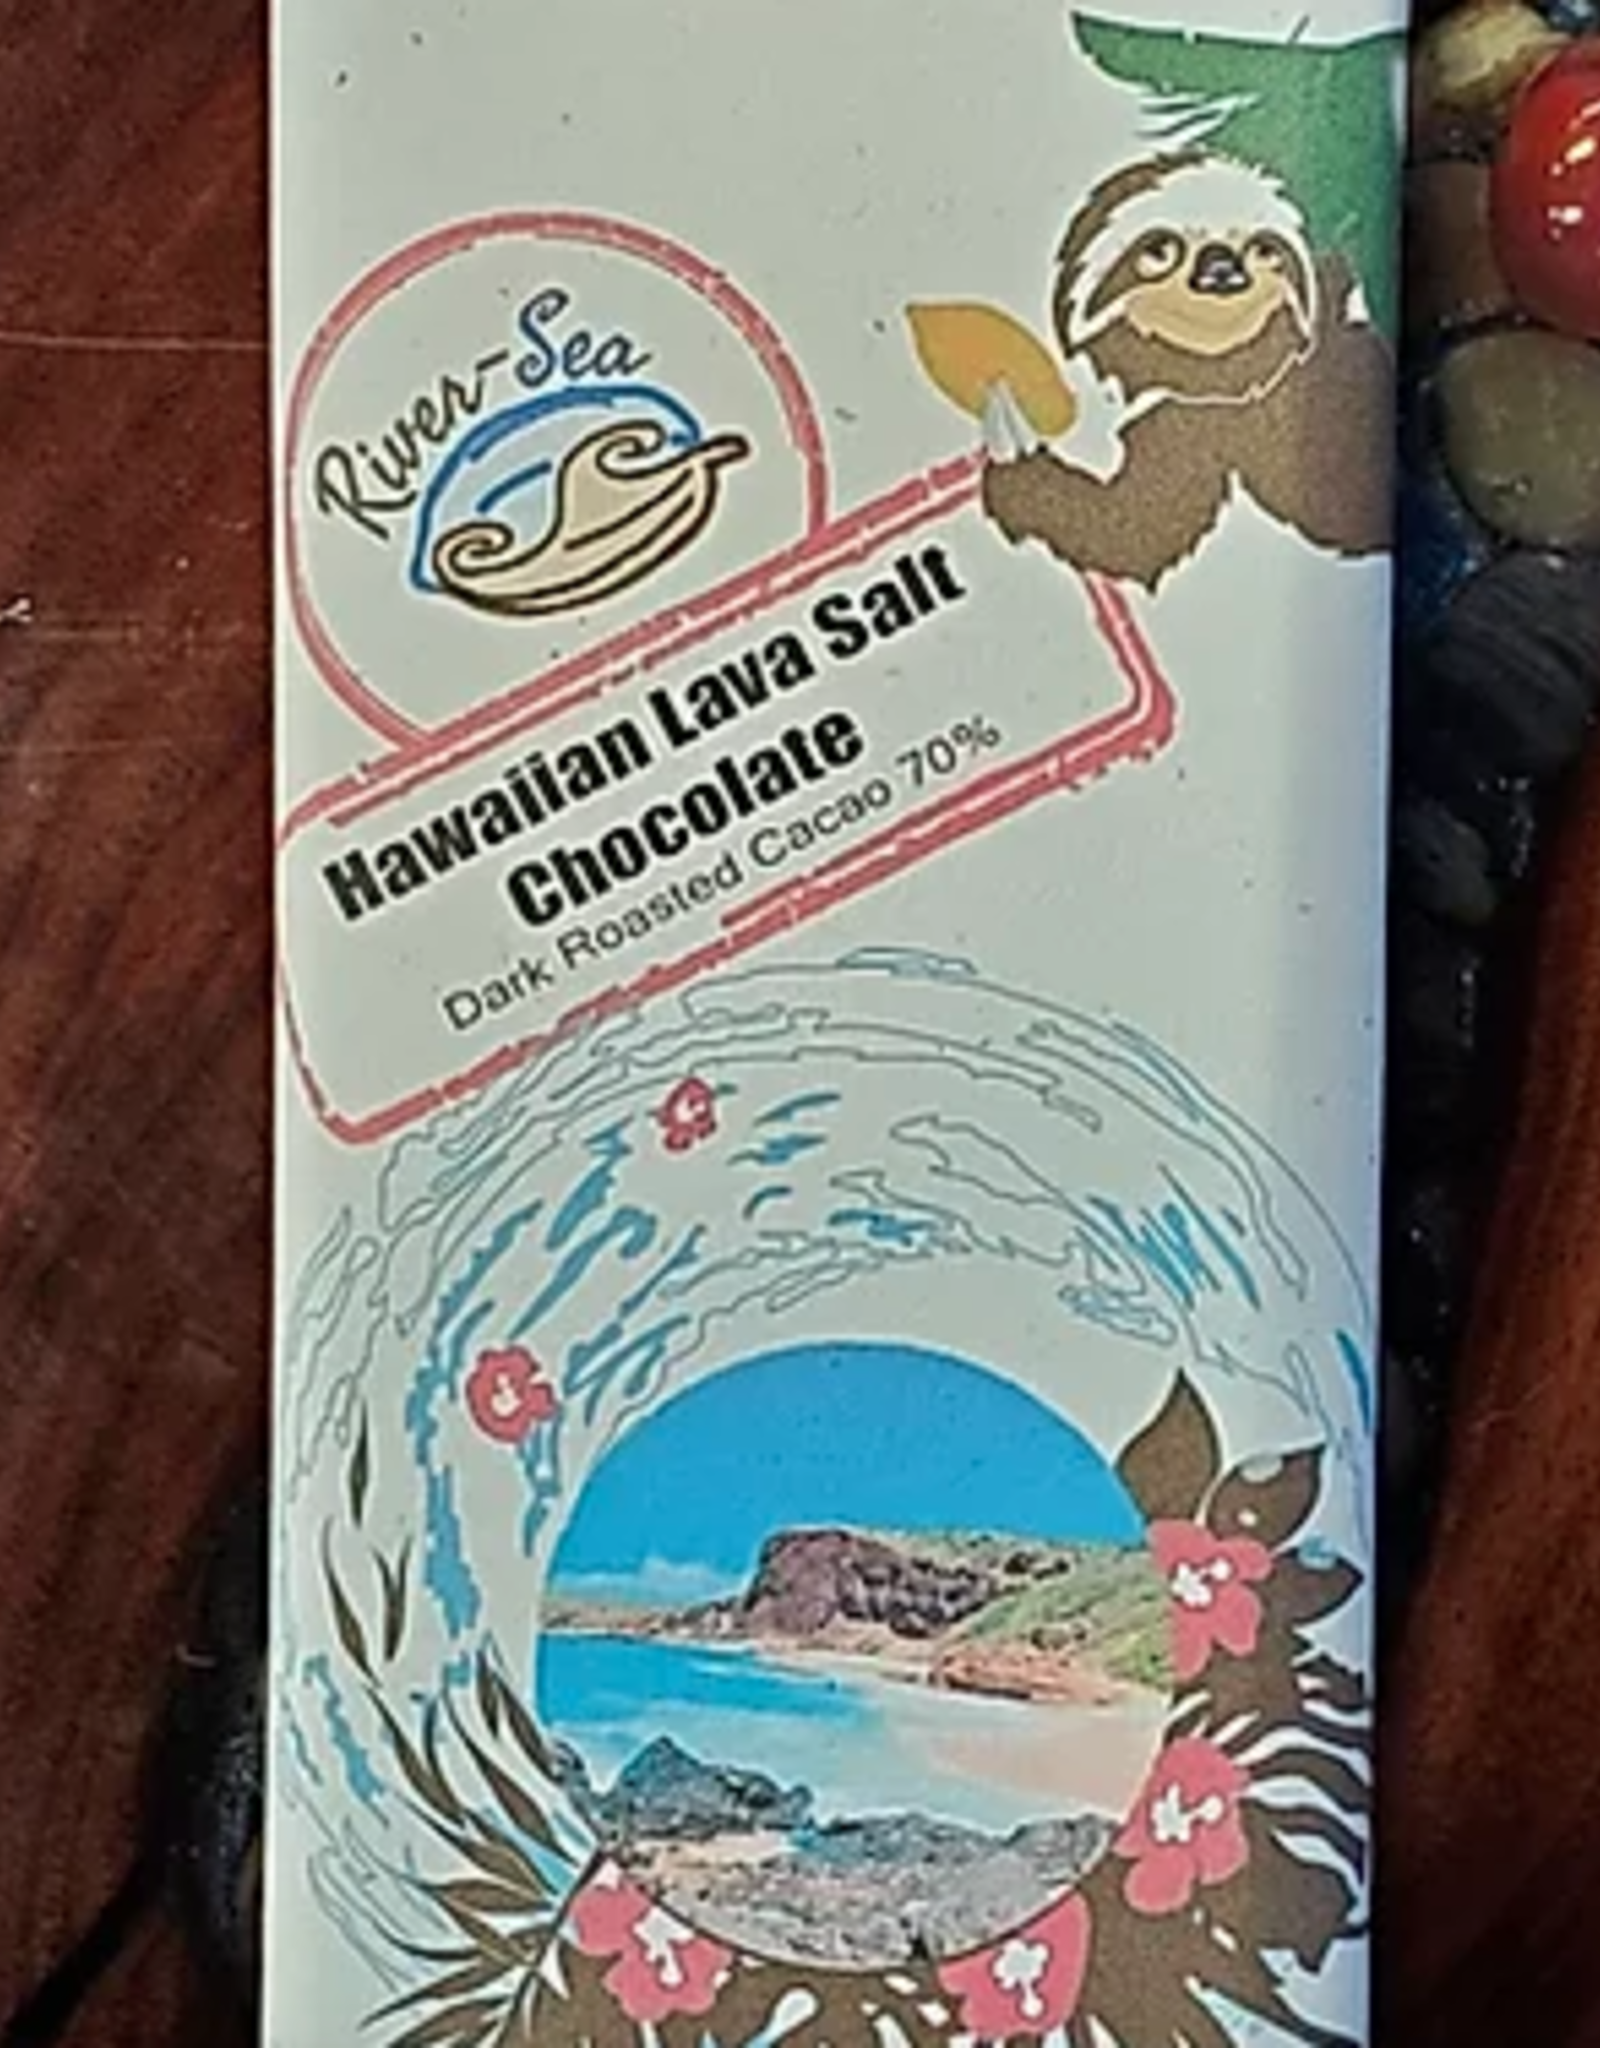 River-Sea Chocolate Hawaiian Lava Salt 70%